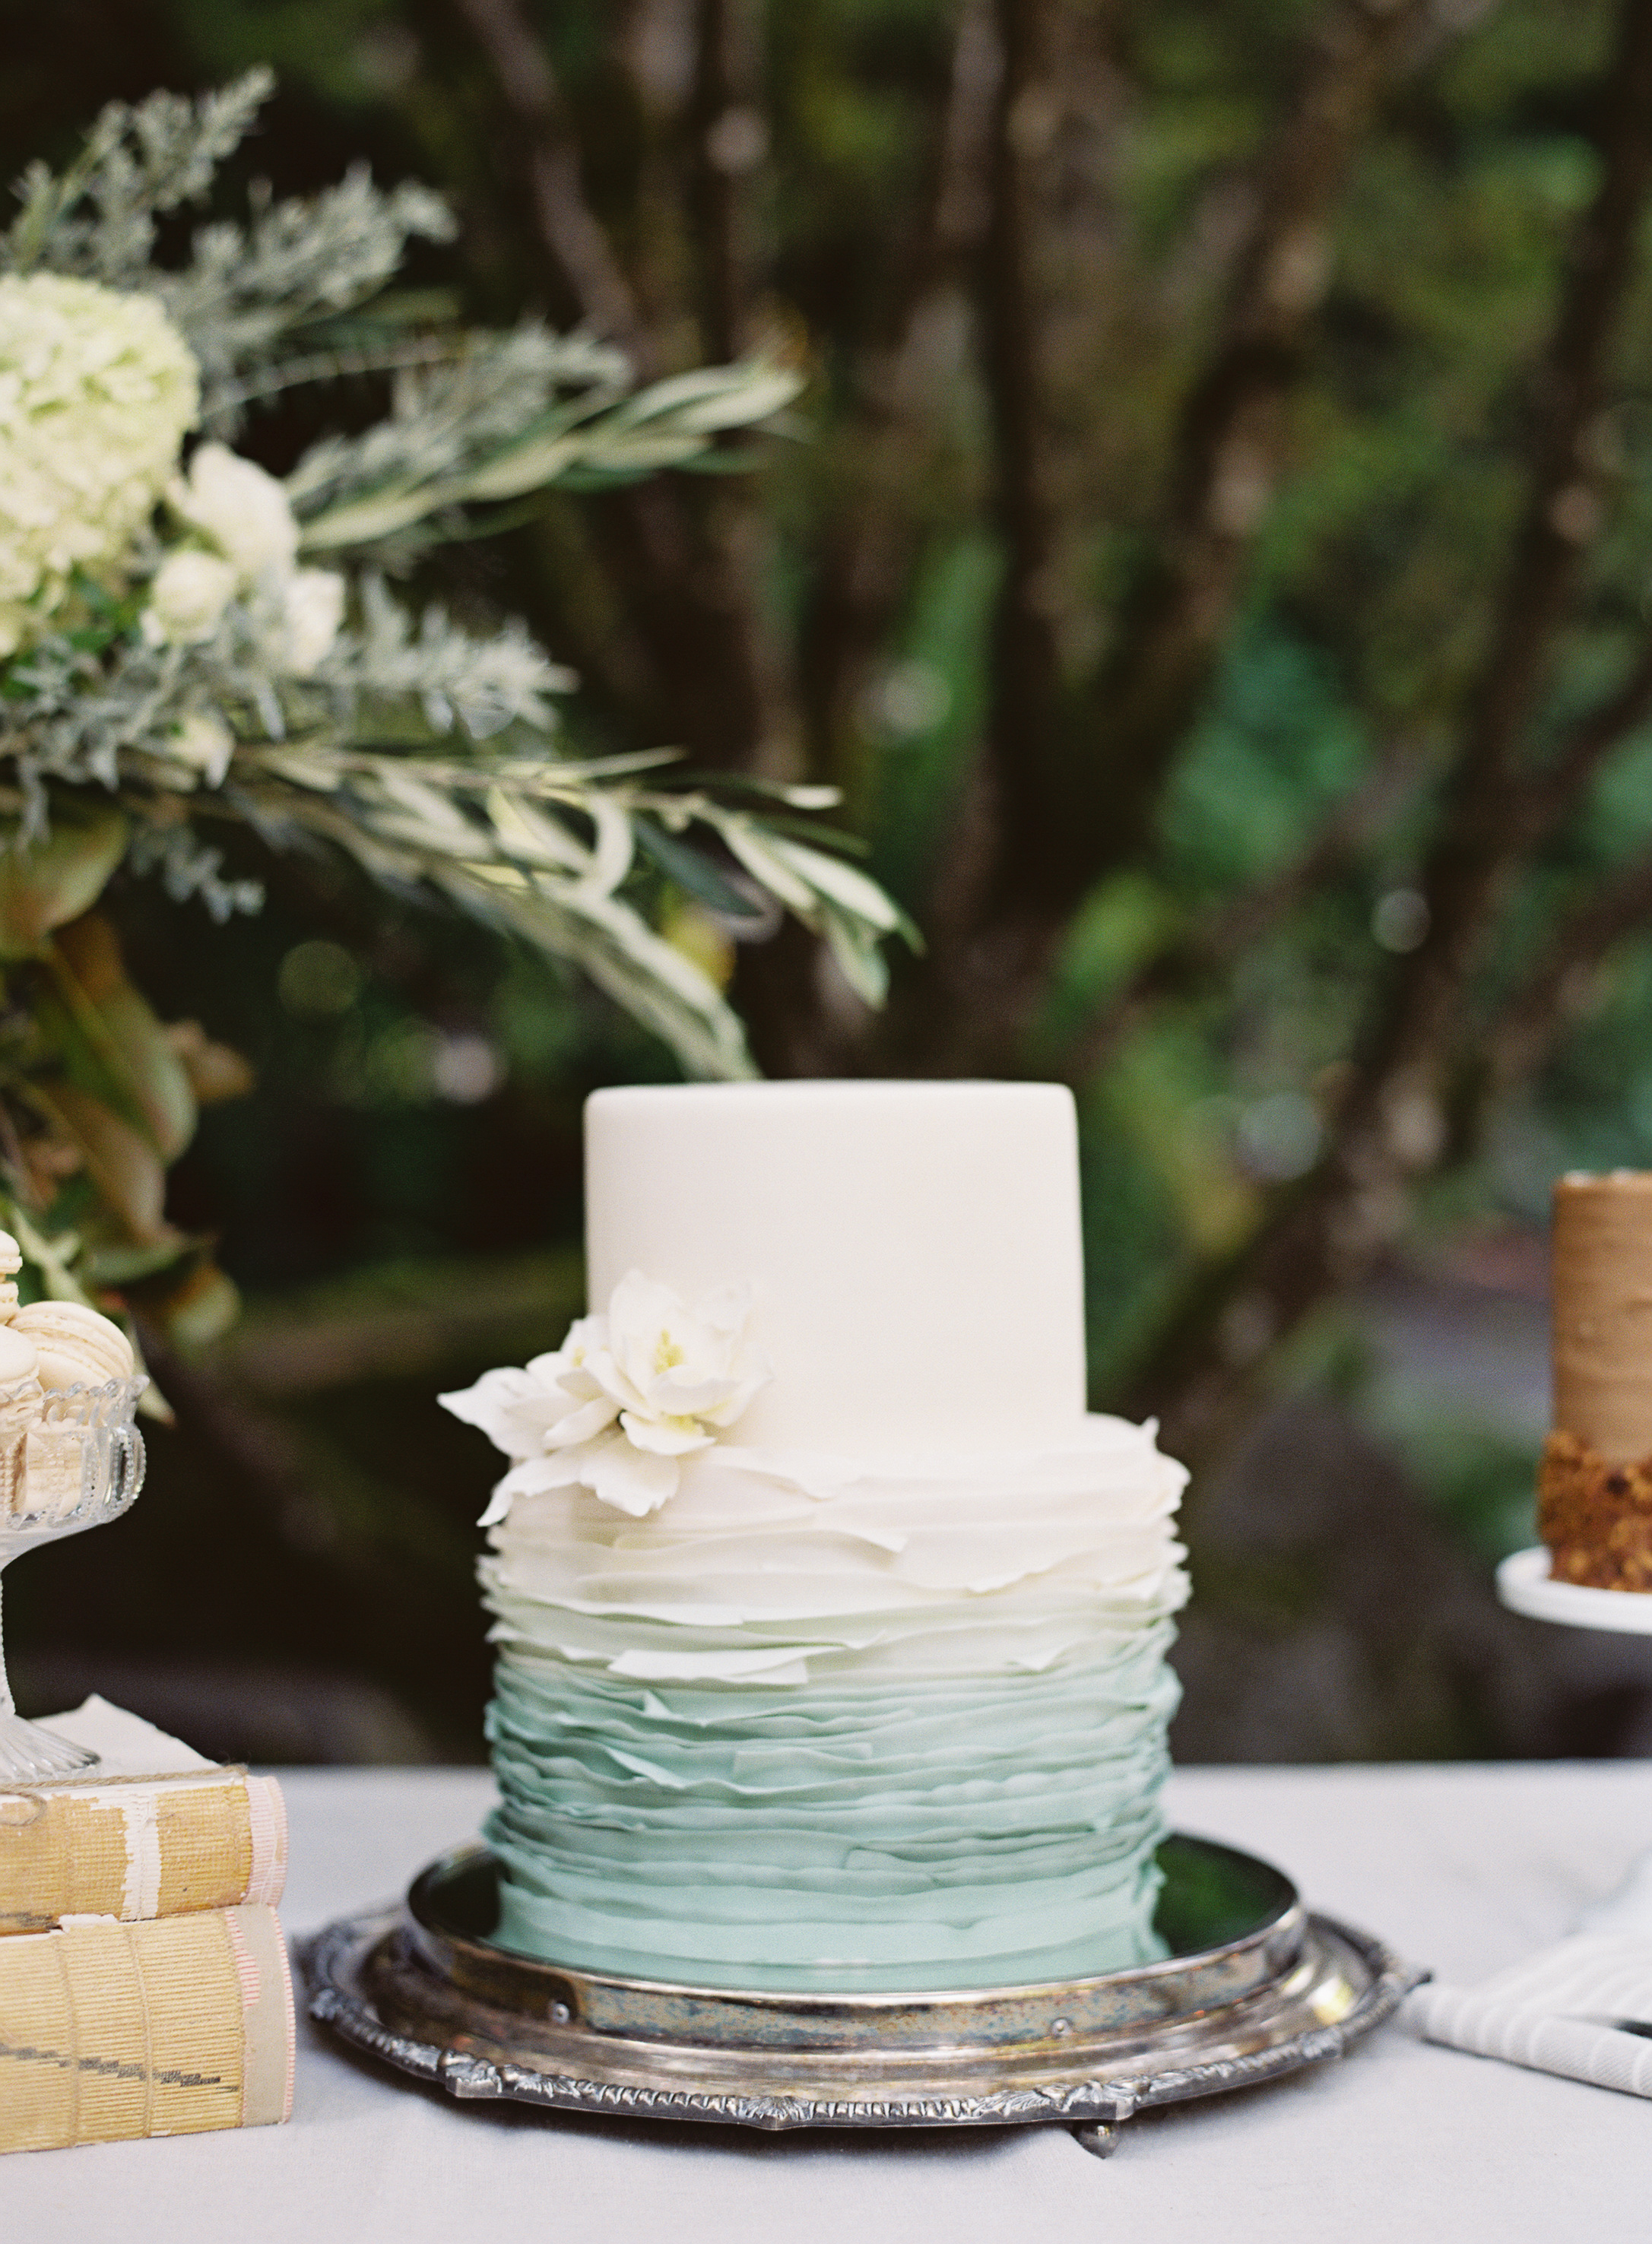 Two-Tiered Deckle-Edge Wedding Cake with Ombre Tiers